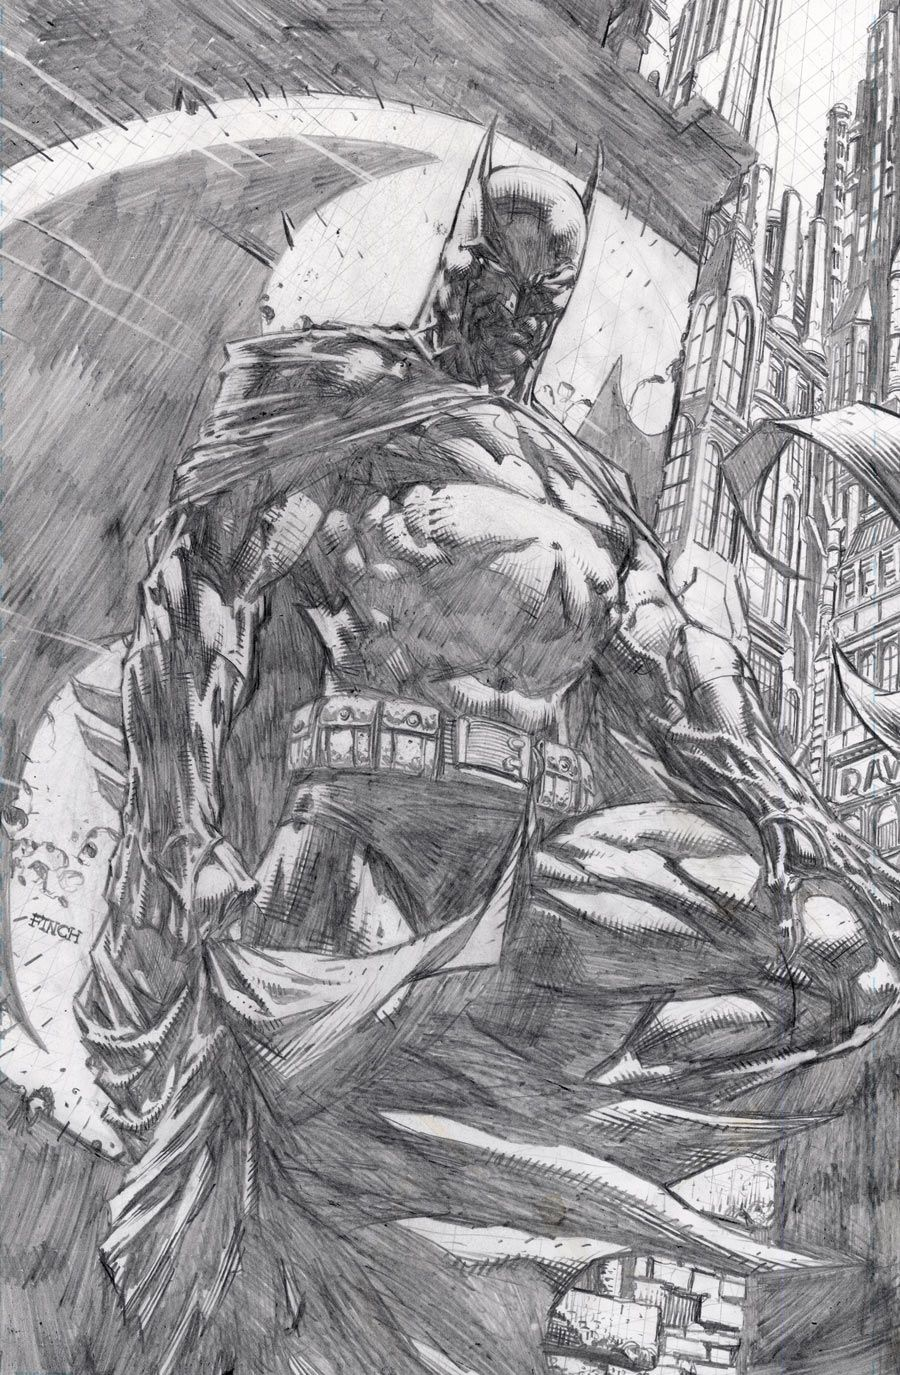 """BATMAN: THE DARK KNIGHT UNWRAPPED BY DAVID FINCH DELUXE EDITION HC Written by DAVID FINCH, GRANT MORRISON, PAUL JENKINS and JUDD WINICK Art and cover by DAVID FINCH On sale MARCH 25 • 288 pg, B&W, 7.0625"""" x 10.875"""", $34.99 US"""